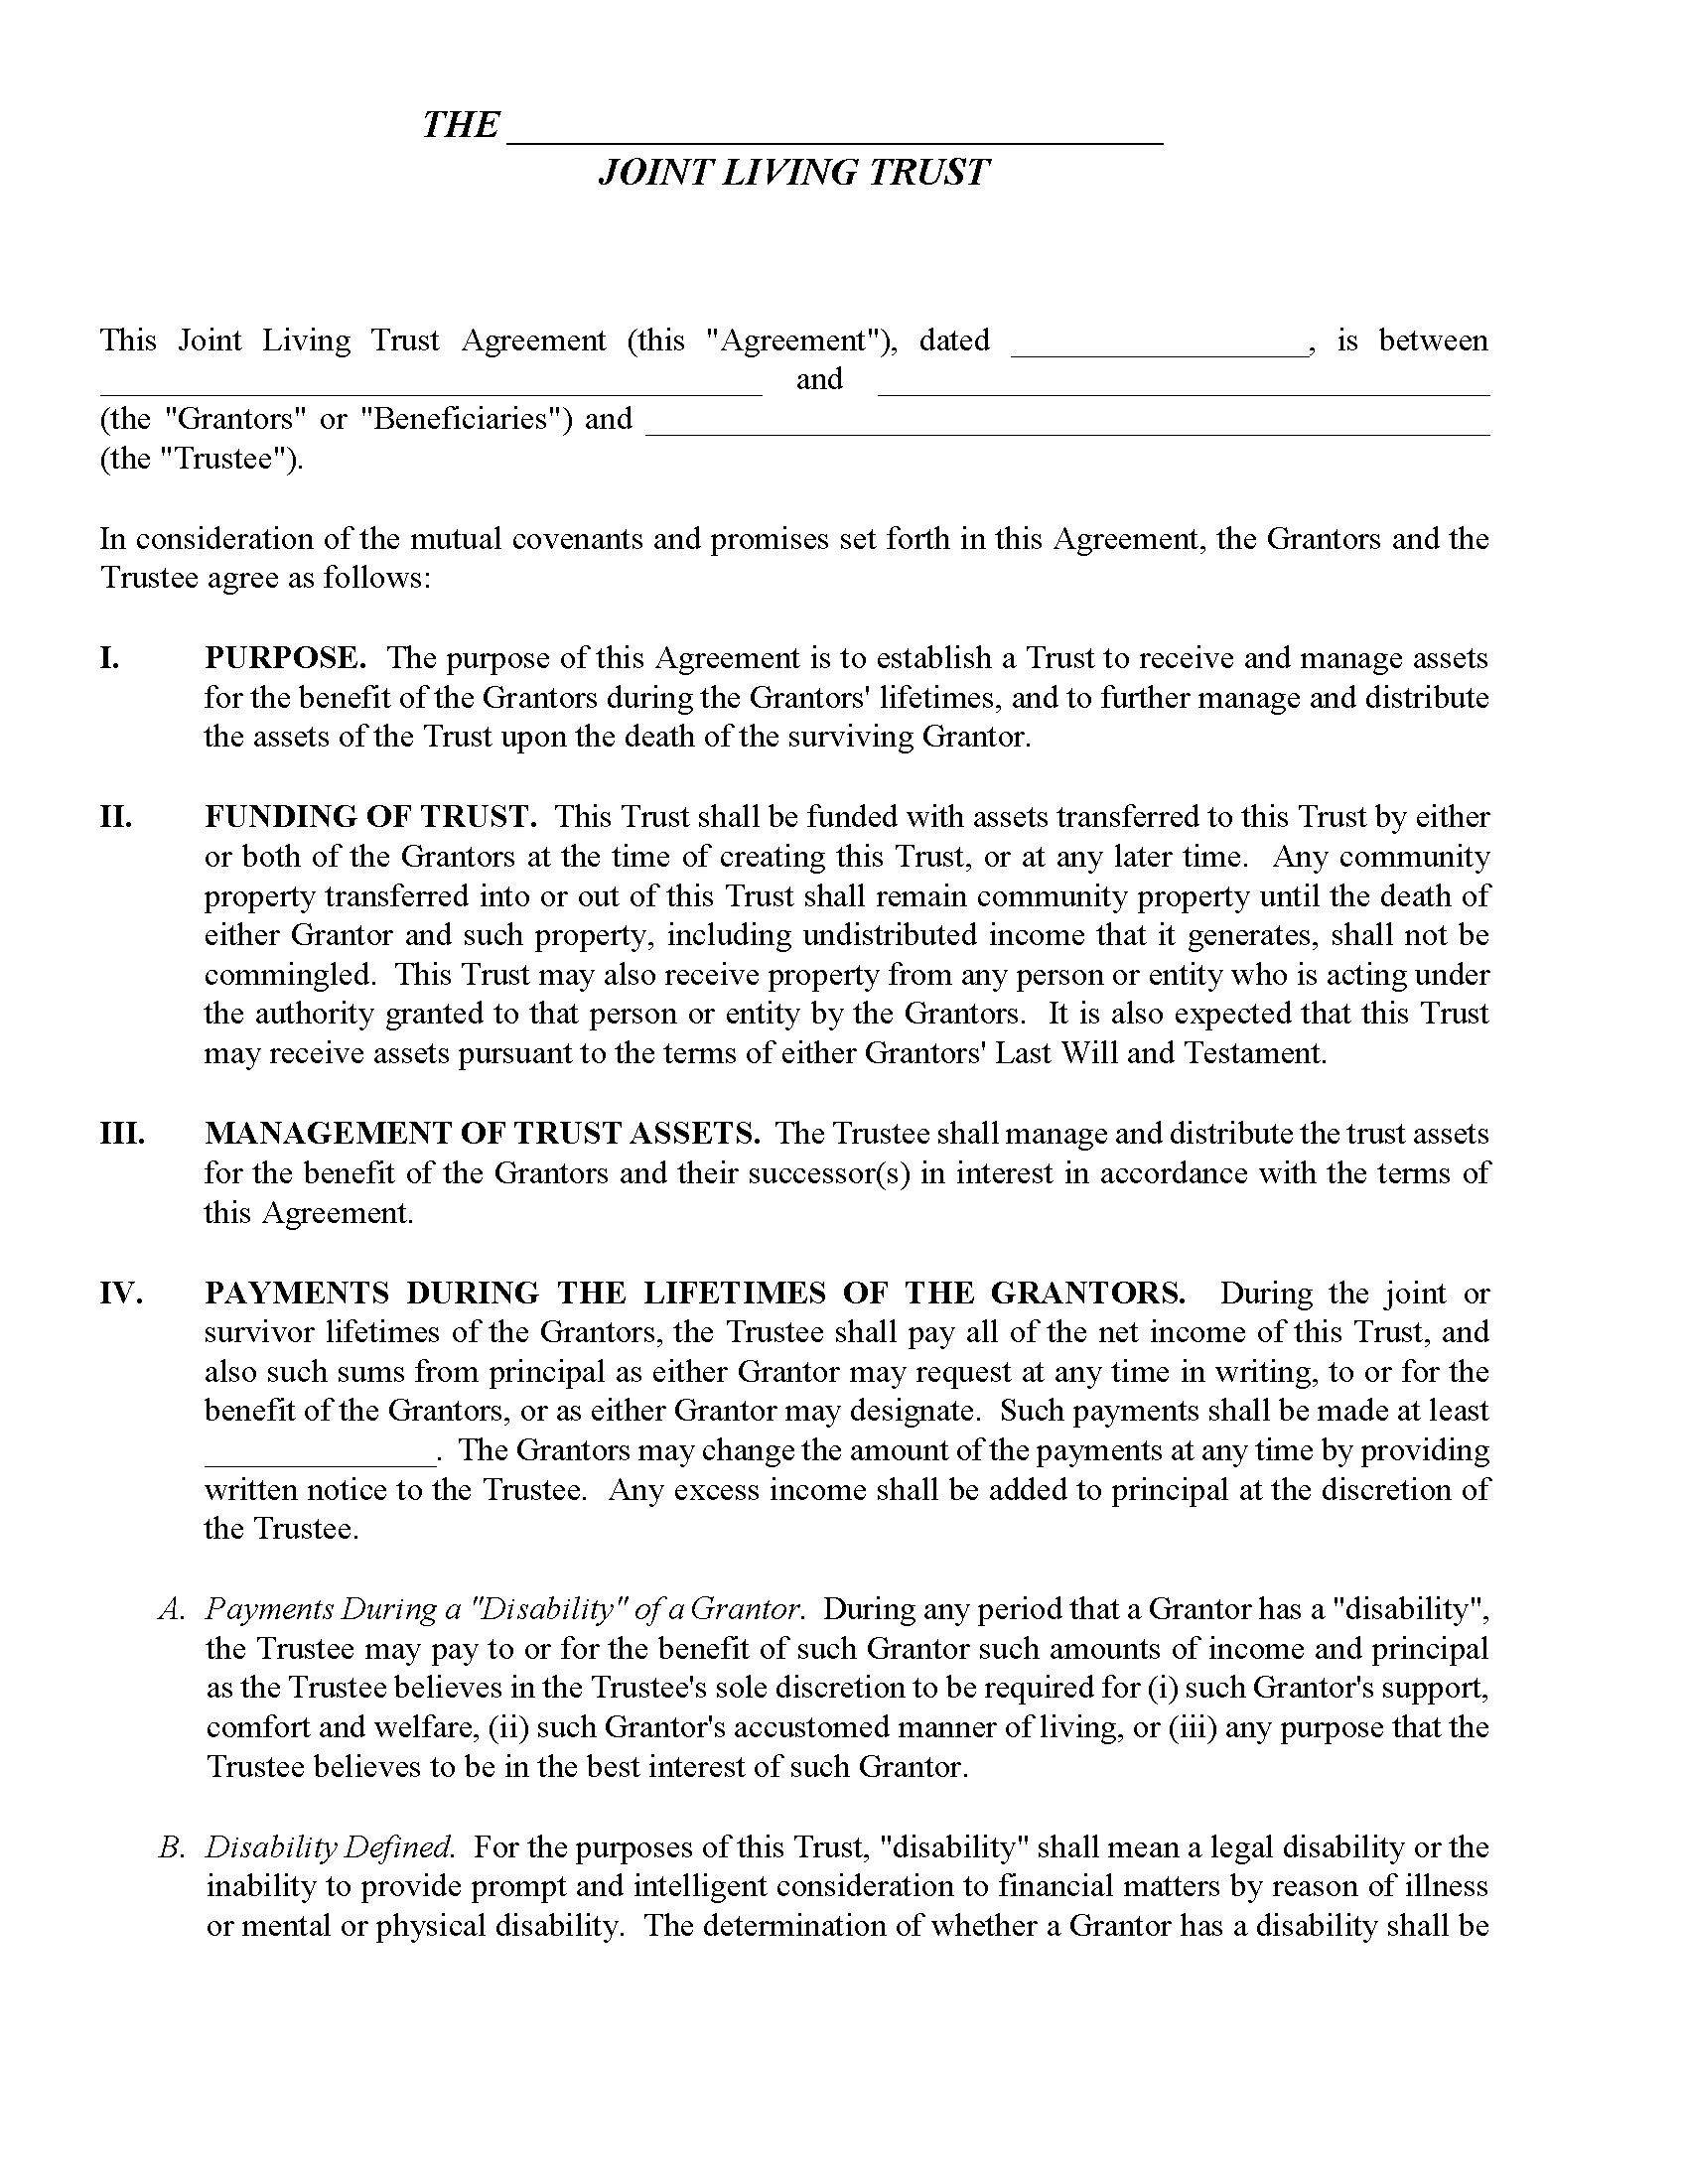 Nevada Joint Living Trust Form